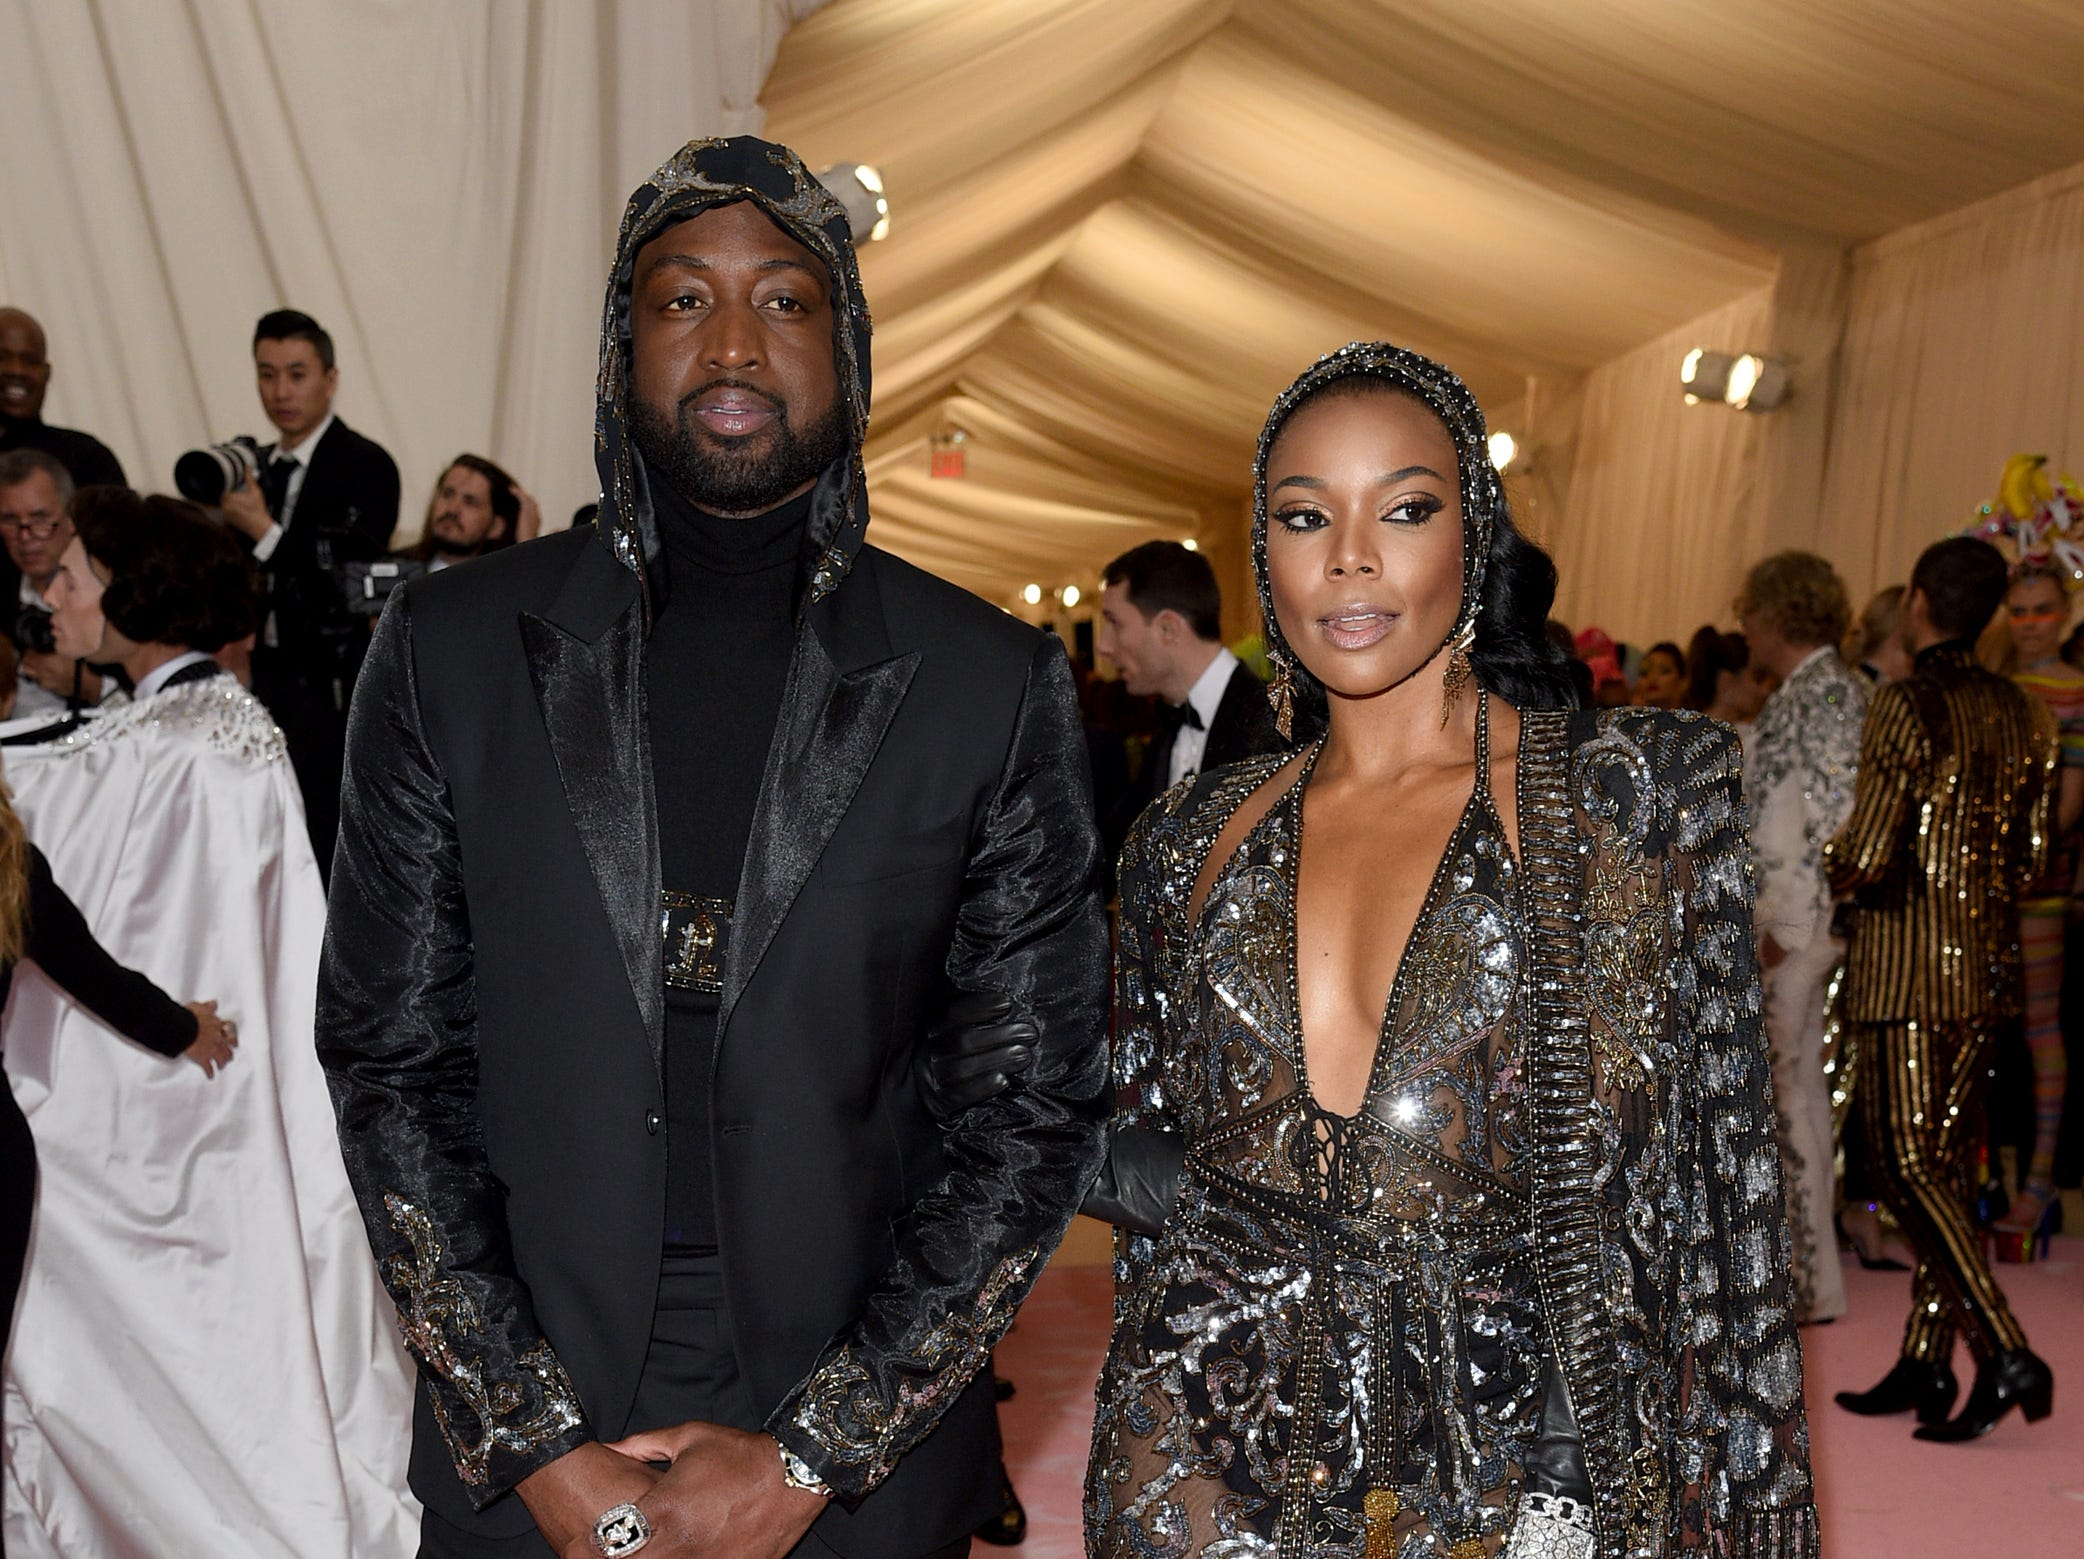 """Dwyane Wade and Gabrielle Union attend The Metropolitan Museum of Art's Costume Institute benefit gala celebrating the opening of the """"Camp: Notes on Fashion"""" exhibition on Monday, May 6, 2019, in New York."""